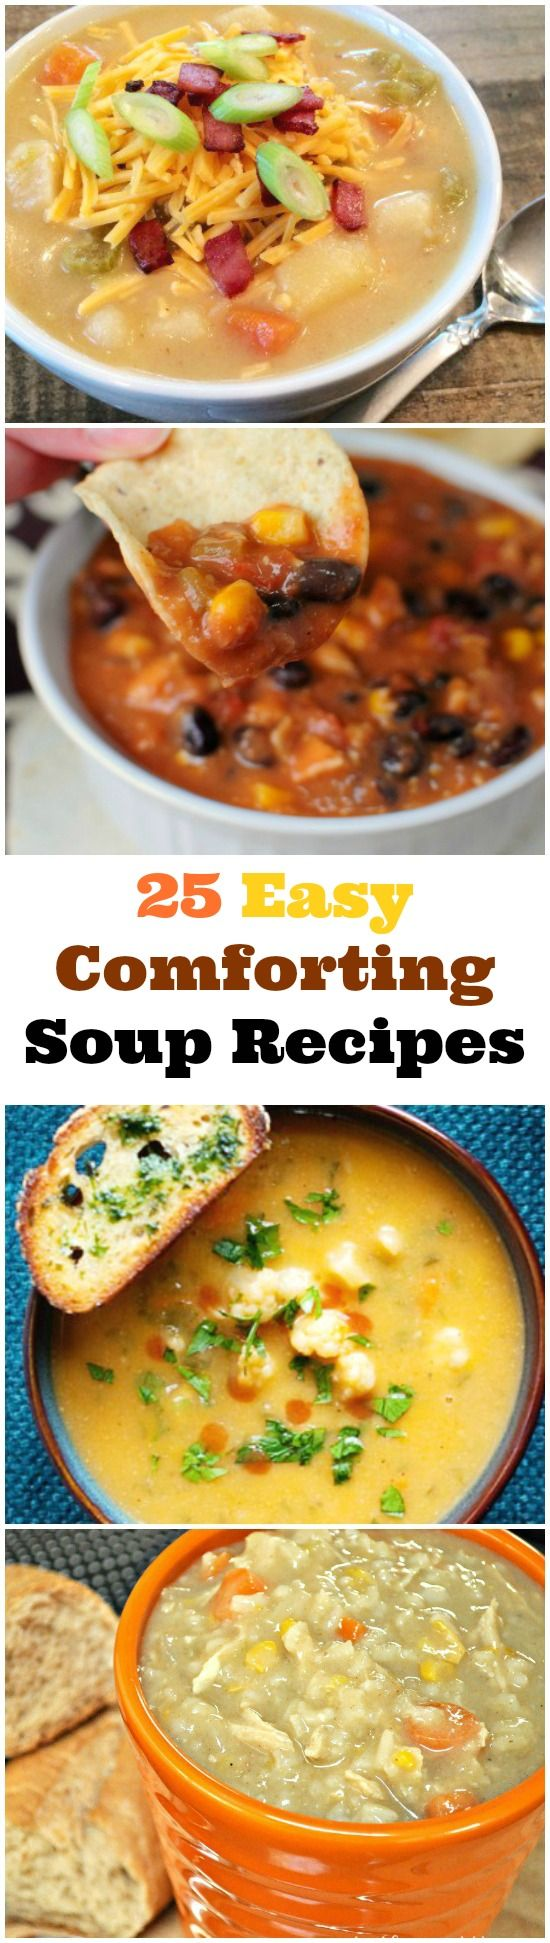 25 Easy, Comforting Soup Recipes to Keep You Warm!